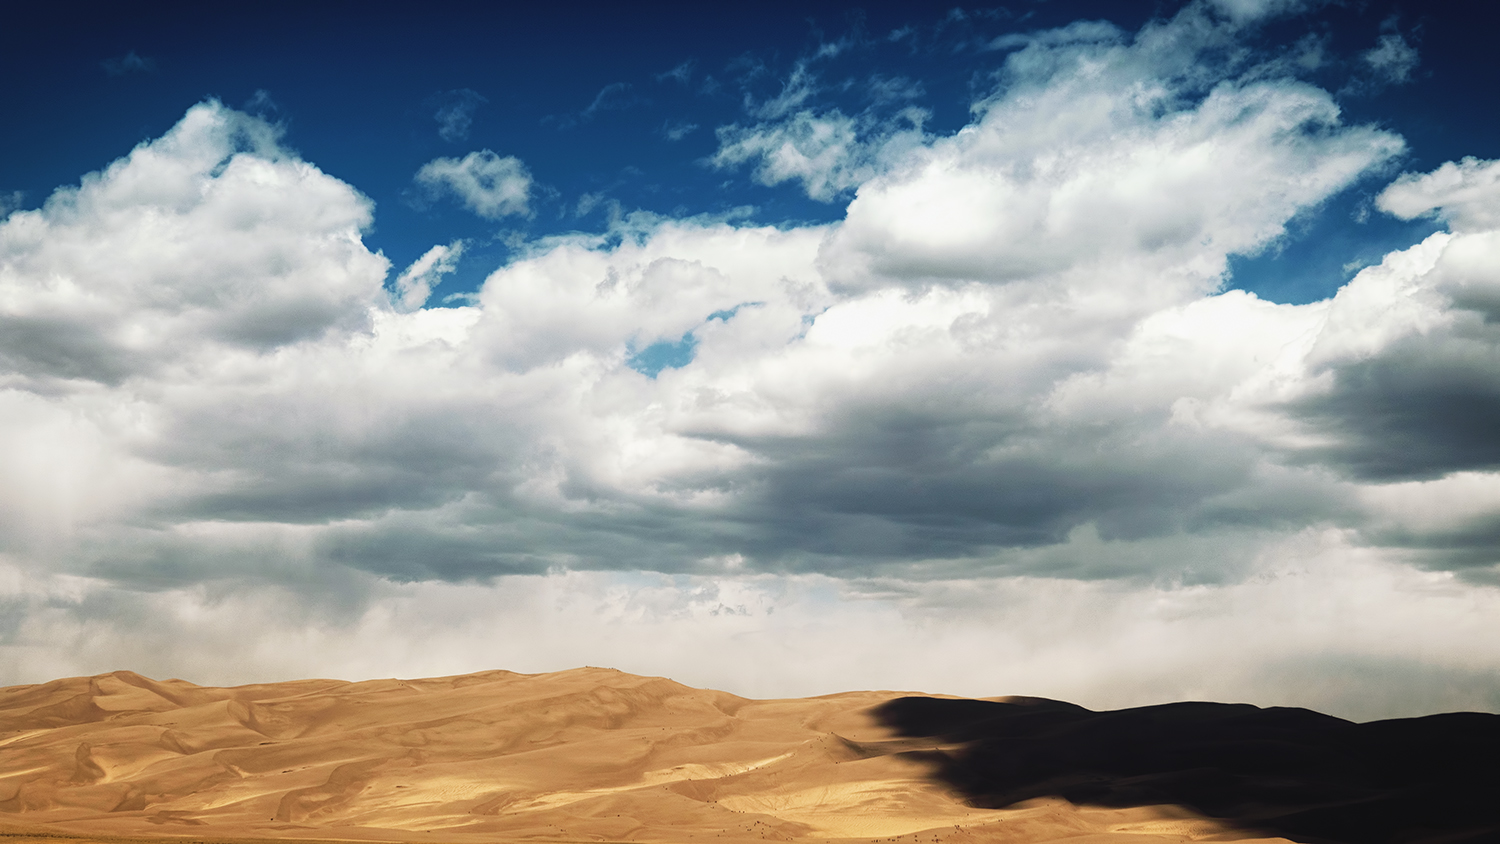 Clouds over Great Sand Dunes Park